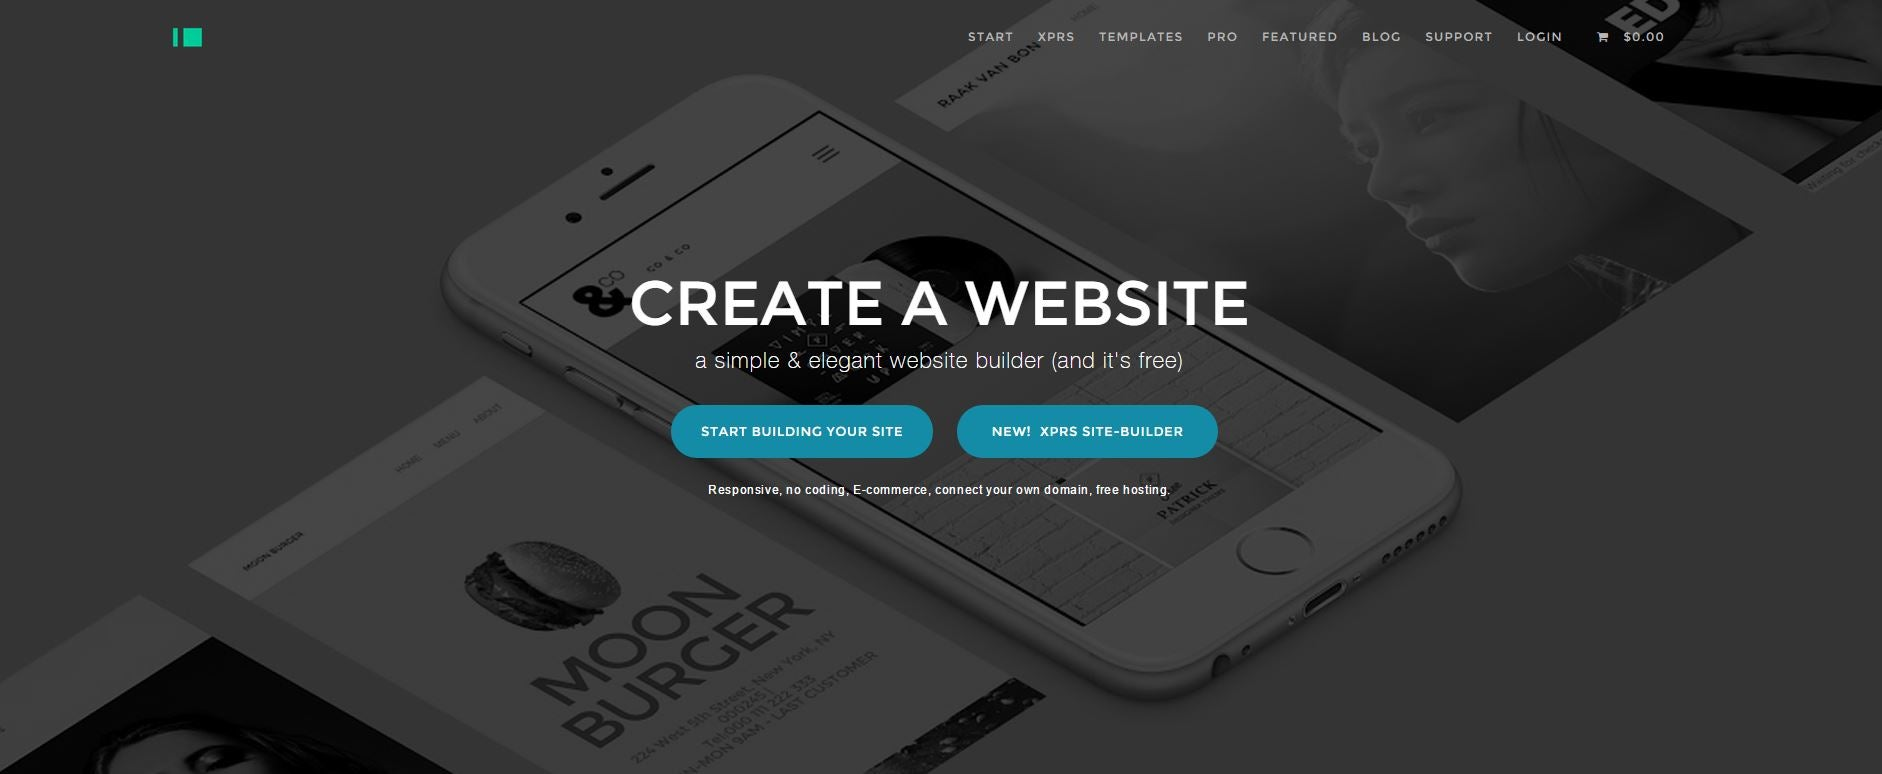 7 best free website builders